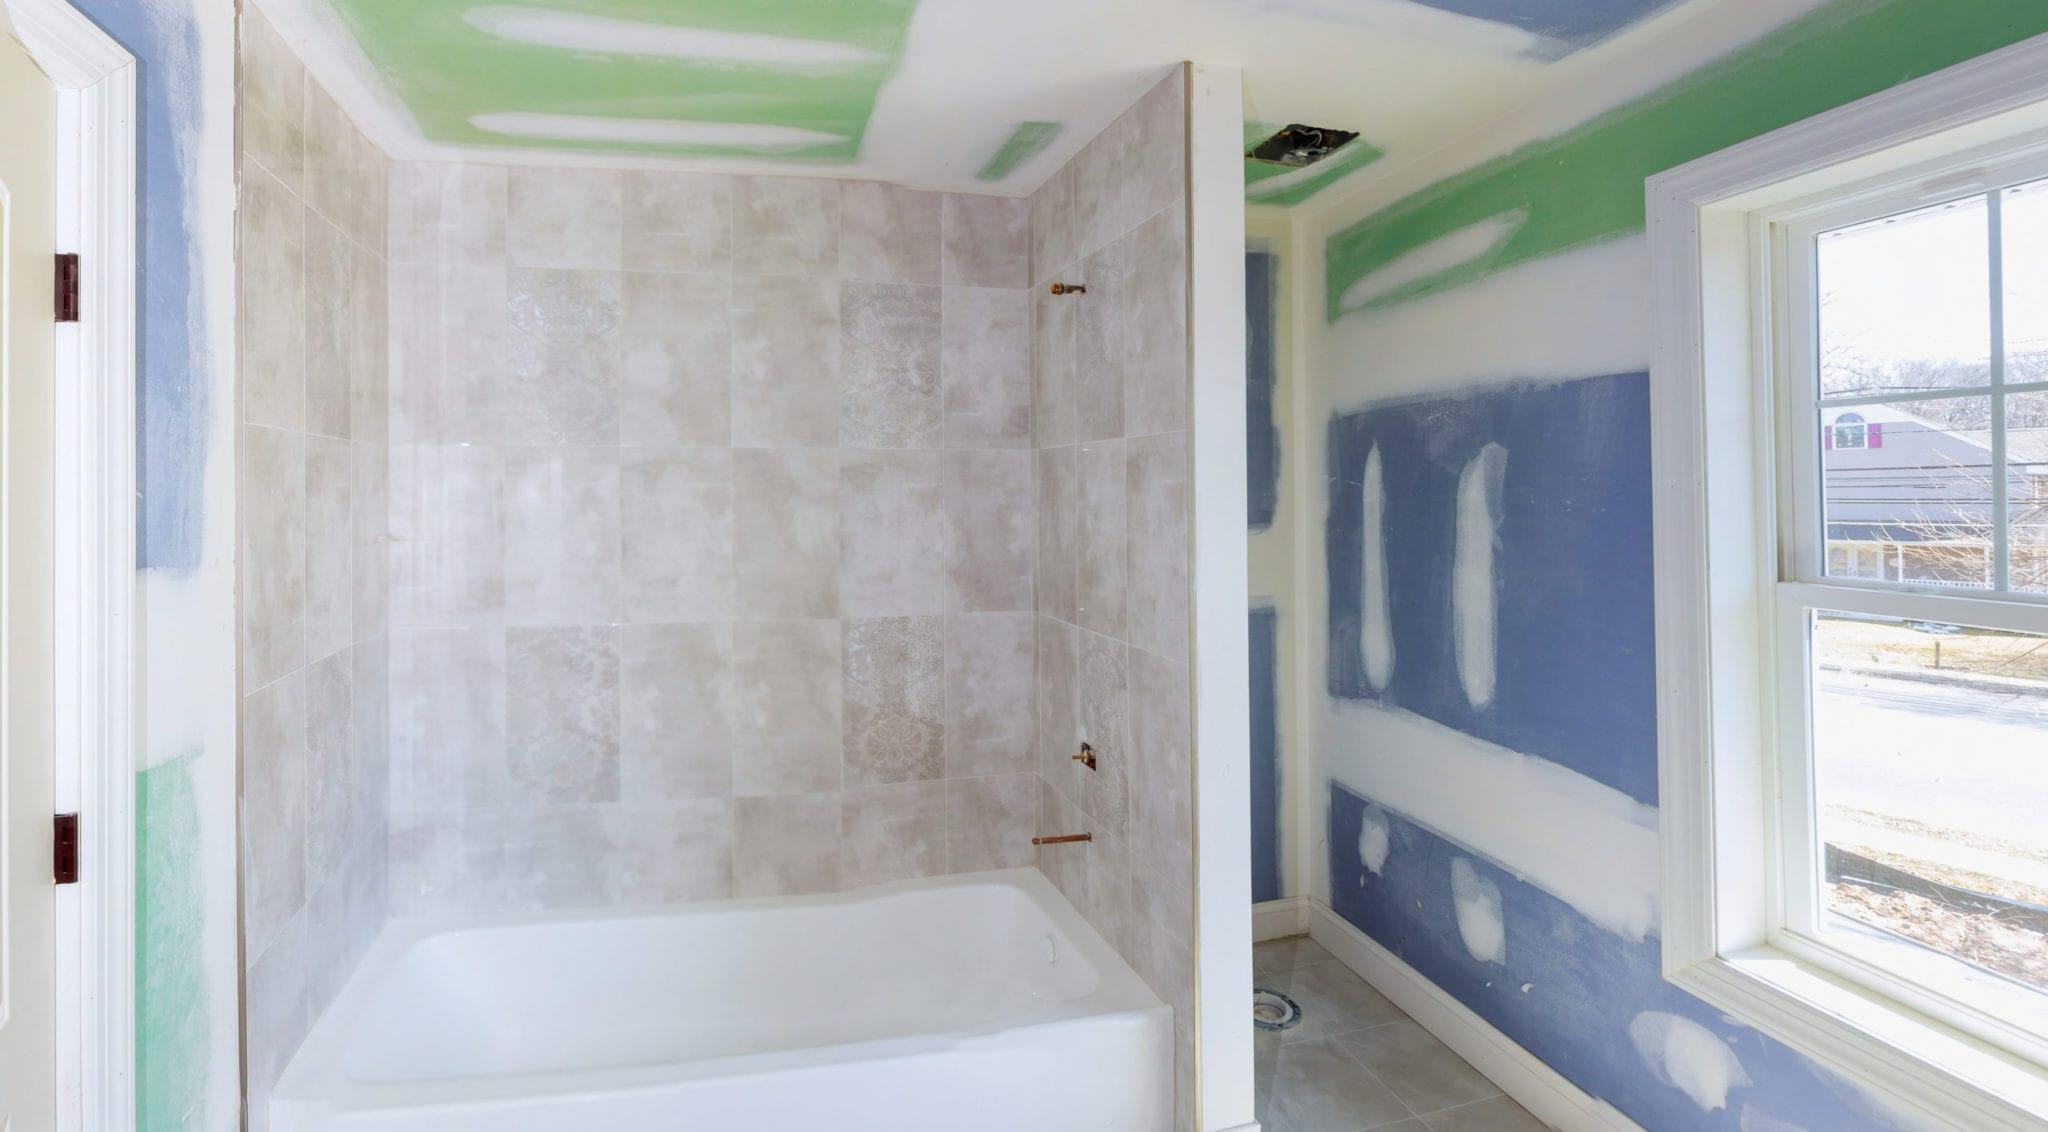 Bathroom remodel progresses as drywall is smoothed, covering seams and screws with tape and spackle mud